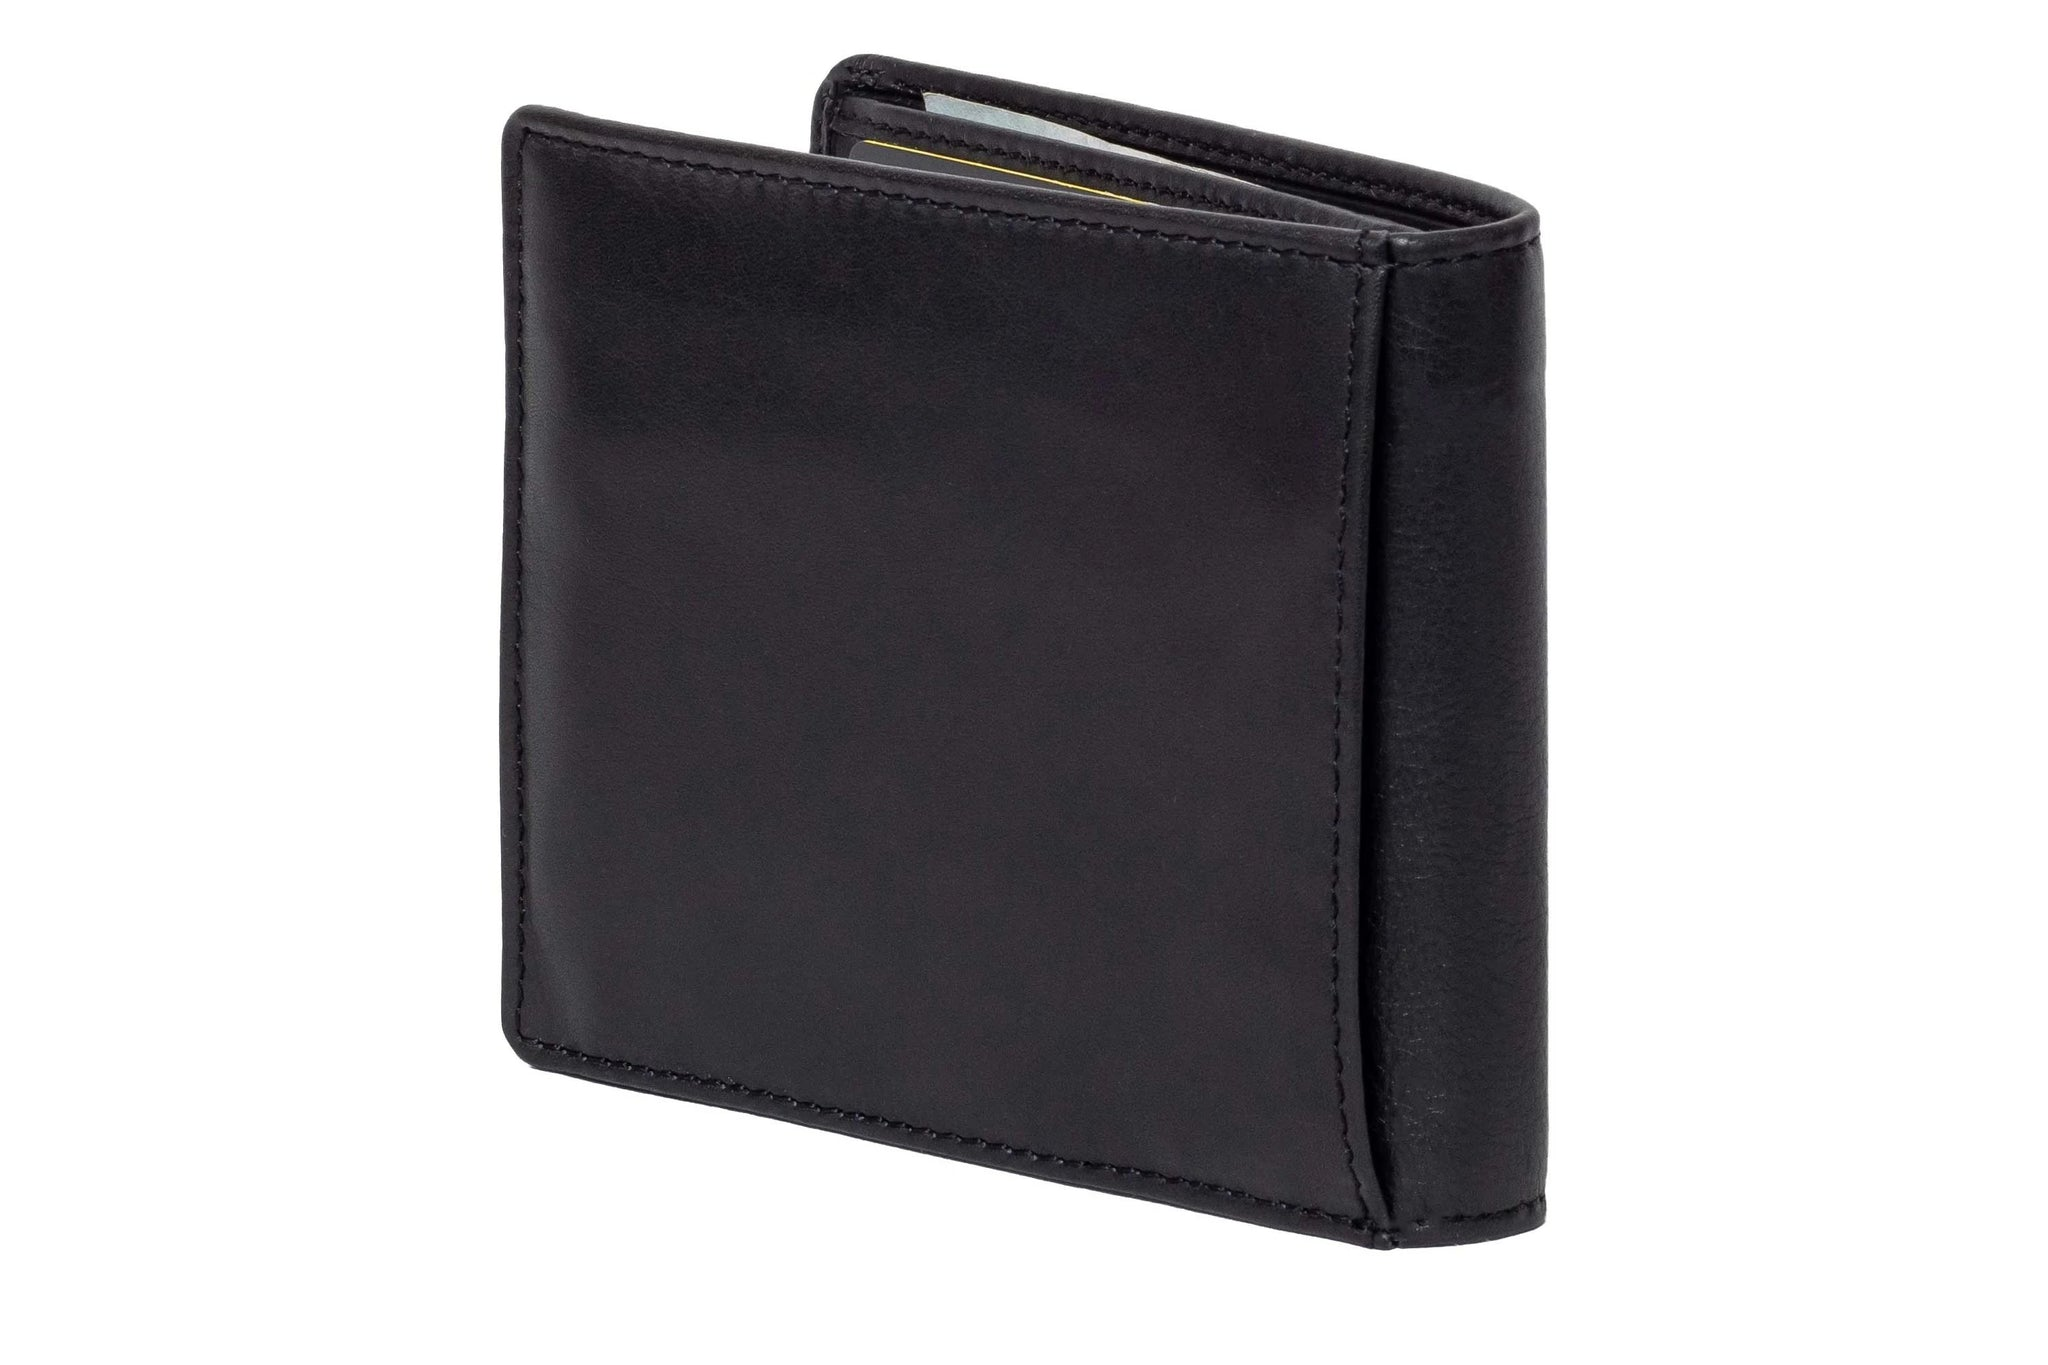 DiLoro Leather Bifold Wallet with Back Slip Pocket, Coin Section and RFID Protection - Convenient Back Slip Pocket